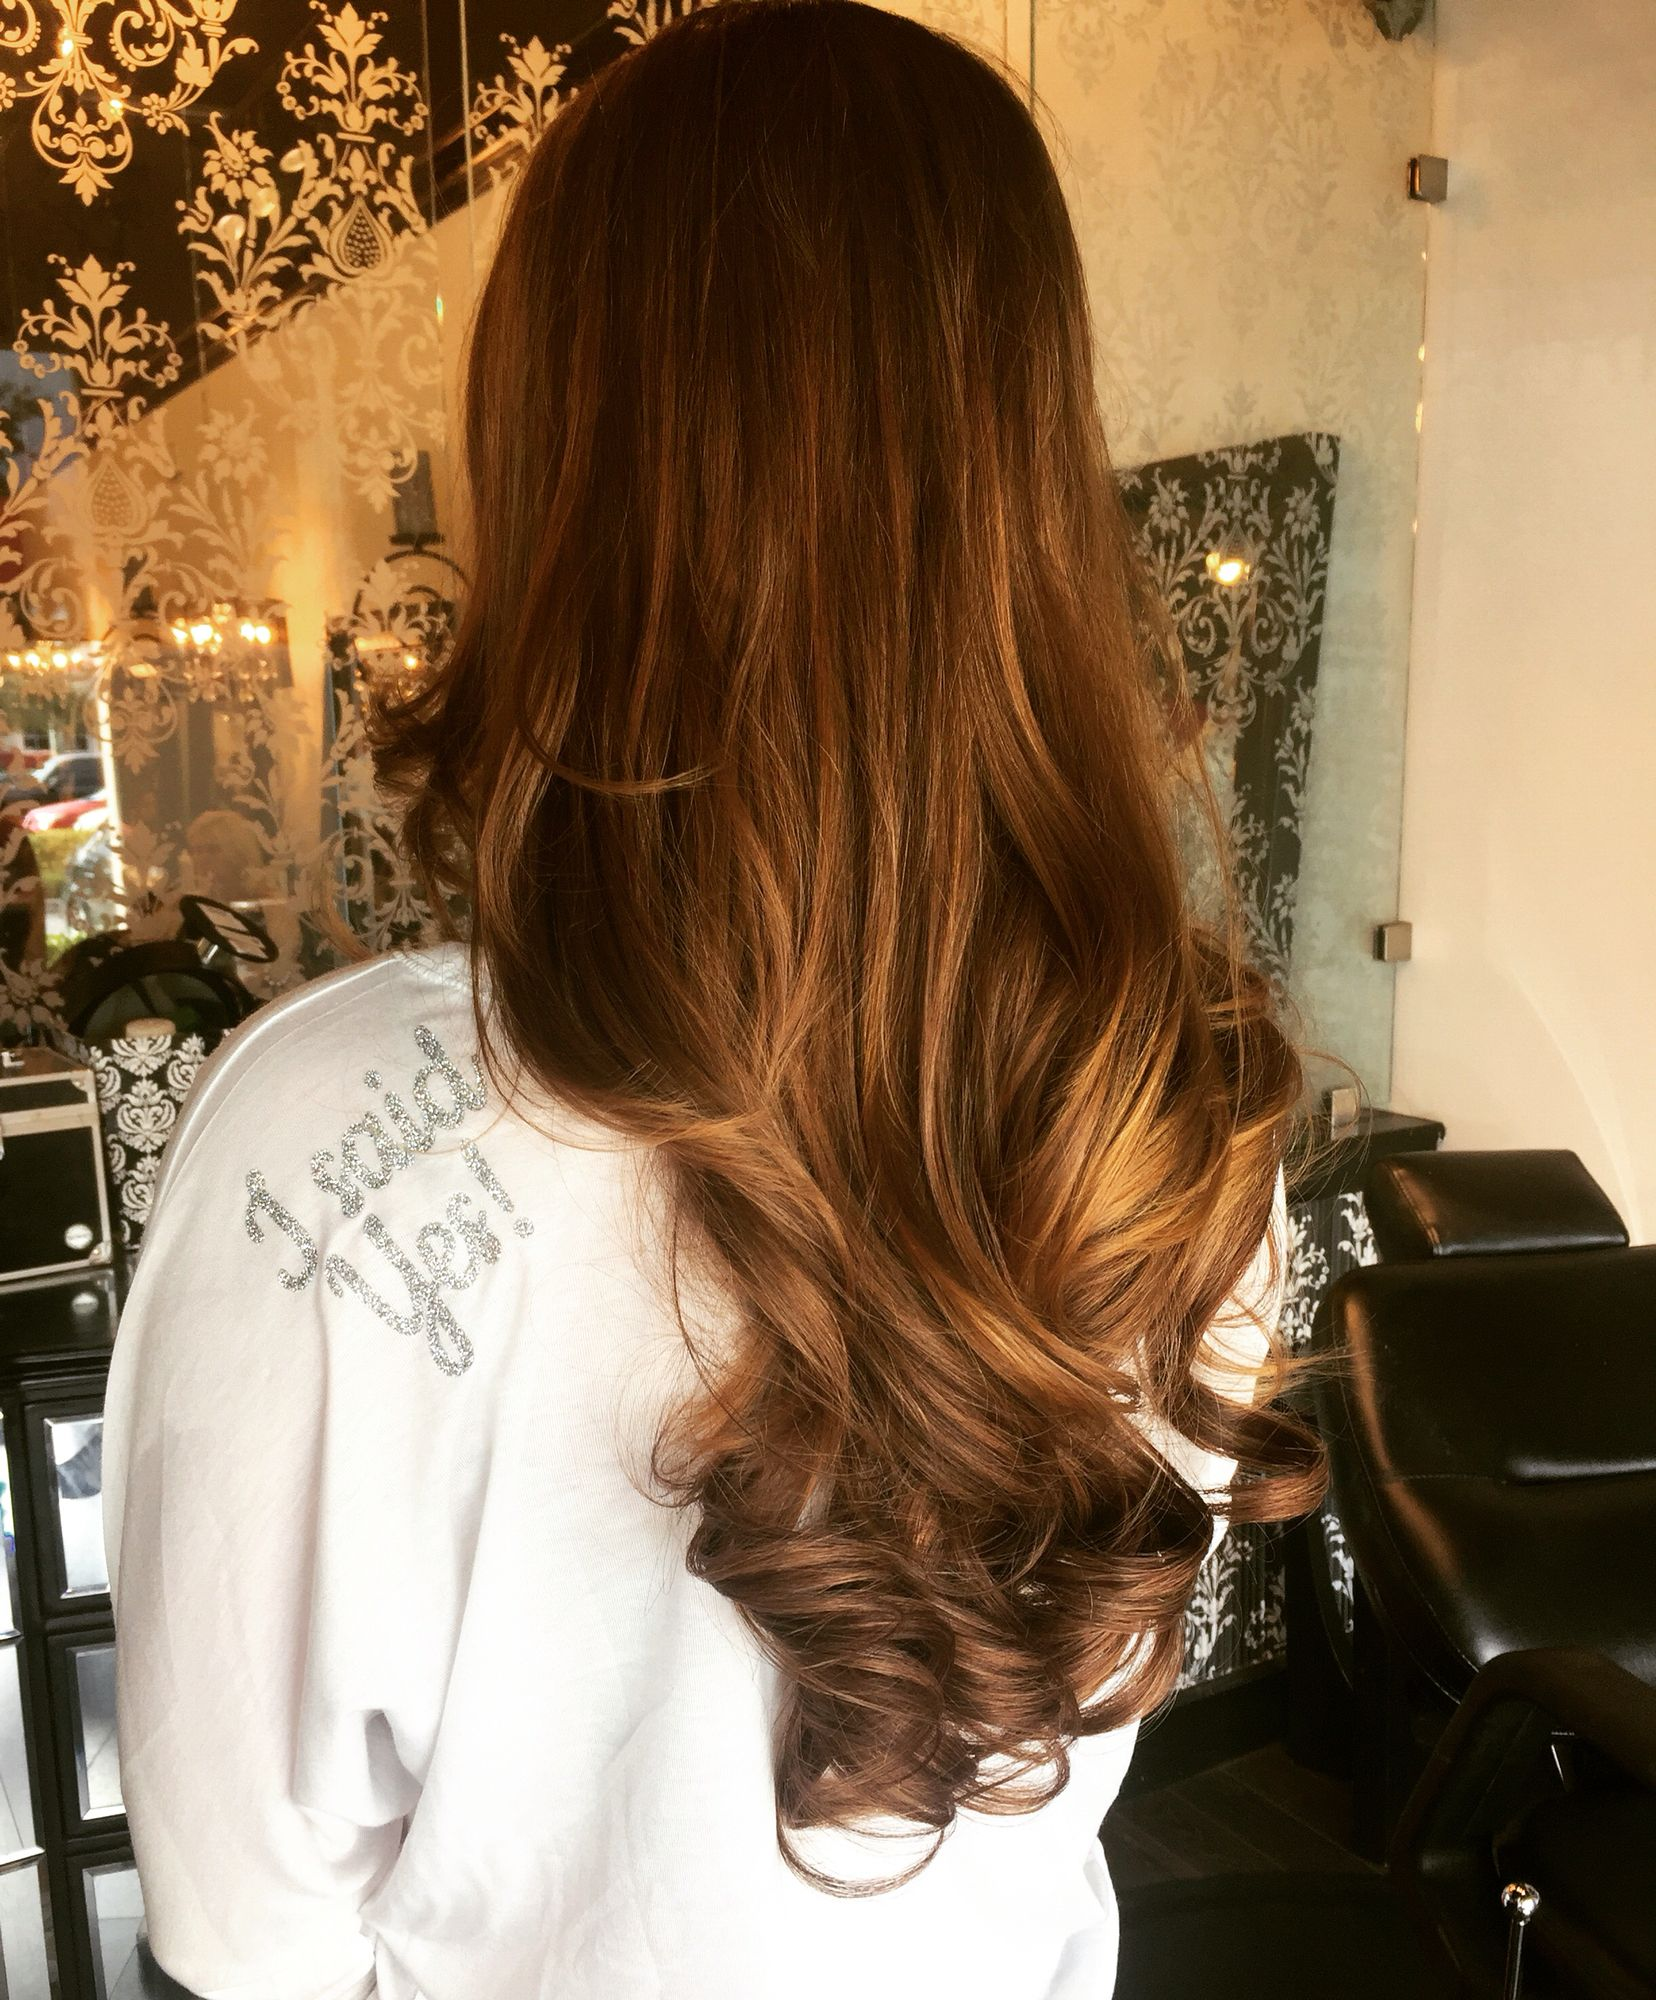 18 20 inch tape hair extensions for a bride to be Volume and length